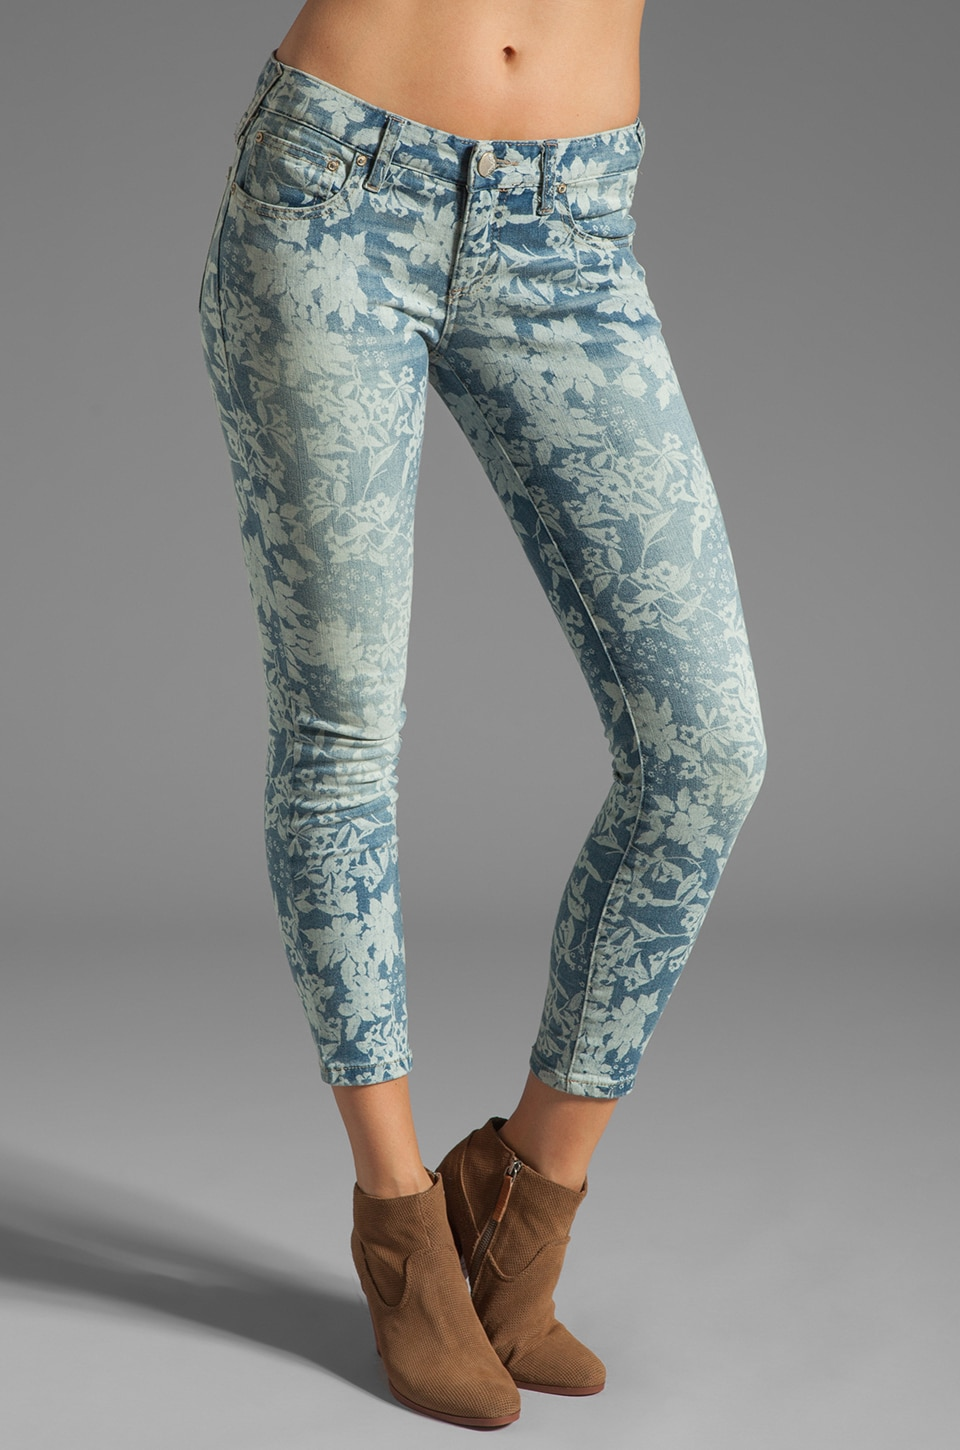 Free People Hawaiian Floral Skinny in Denim Combo